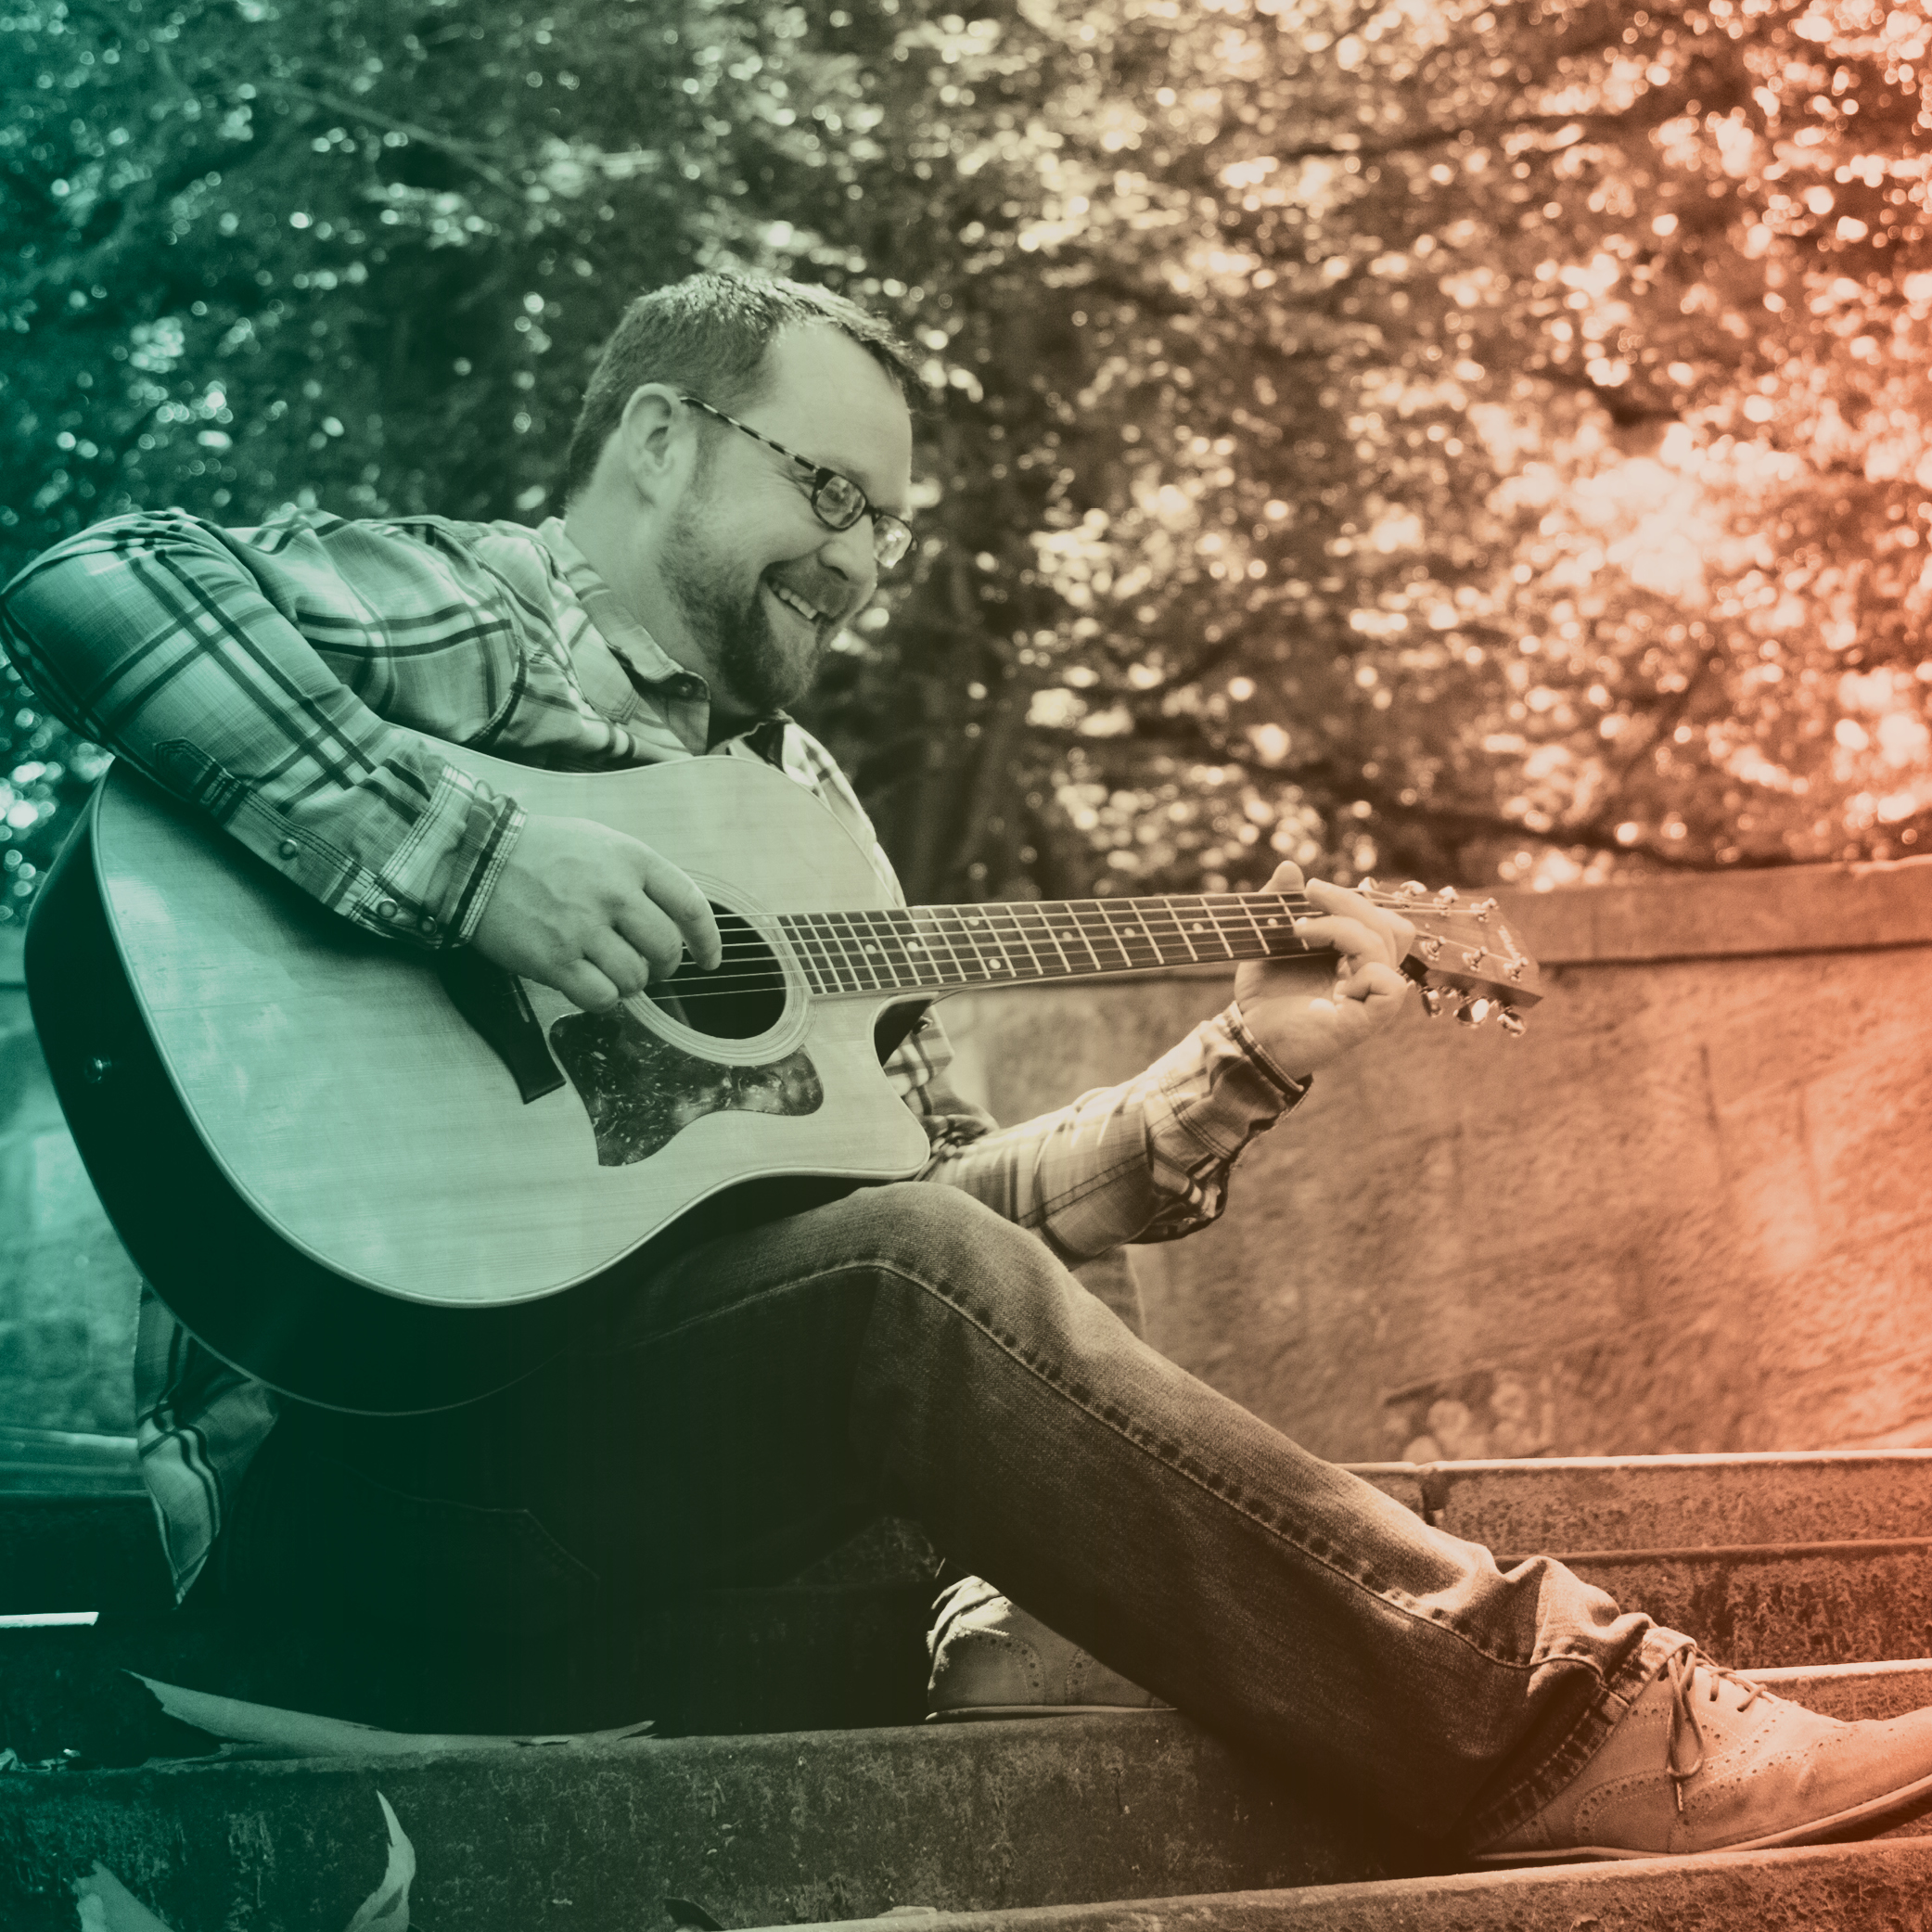 Matt Harmon  |  Saturday, September 14  |  6:00 p.m. Mitchell's